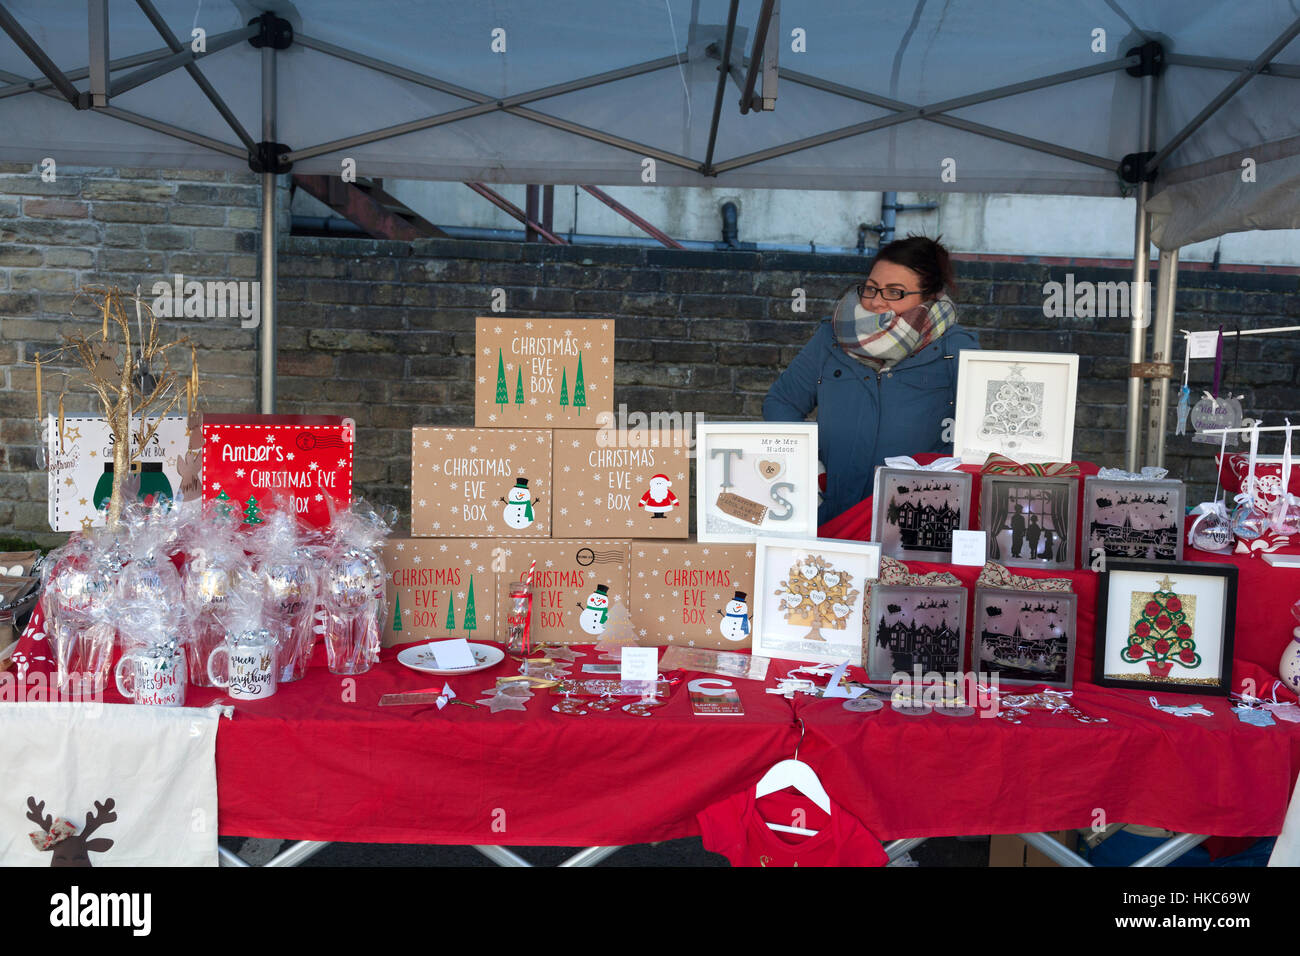 Stall at Totally Locally market, Sowerby Bridge, West Yorkshire - Stock Image